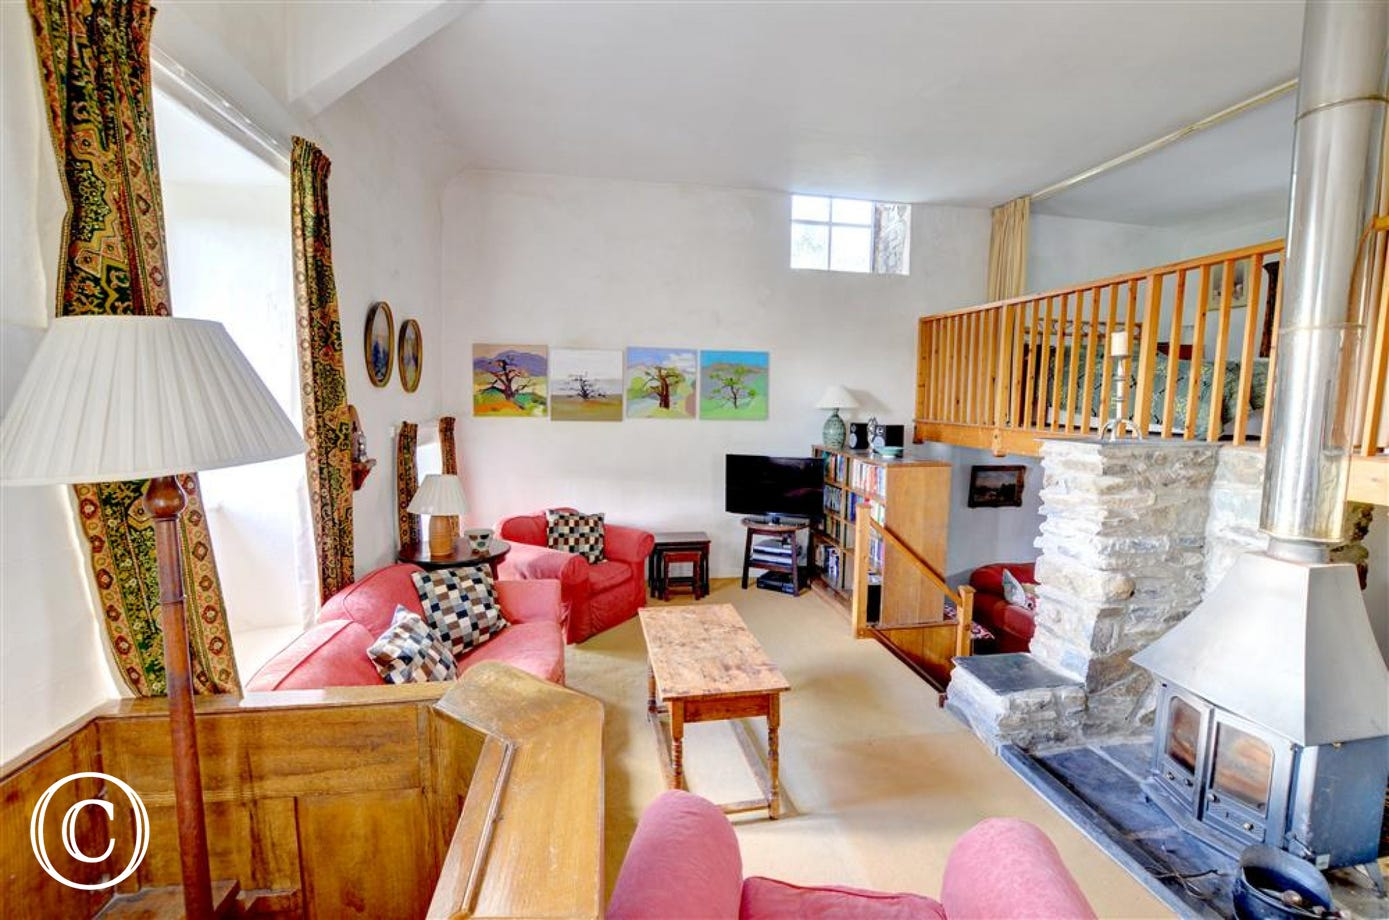 The open plan living accommodation is divided into distinct areas; the original pulpit and a woodburning stove are features of the sitting room